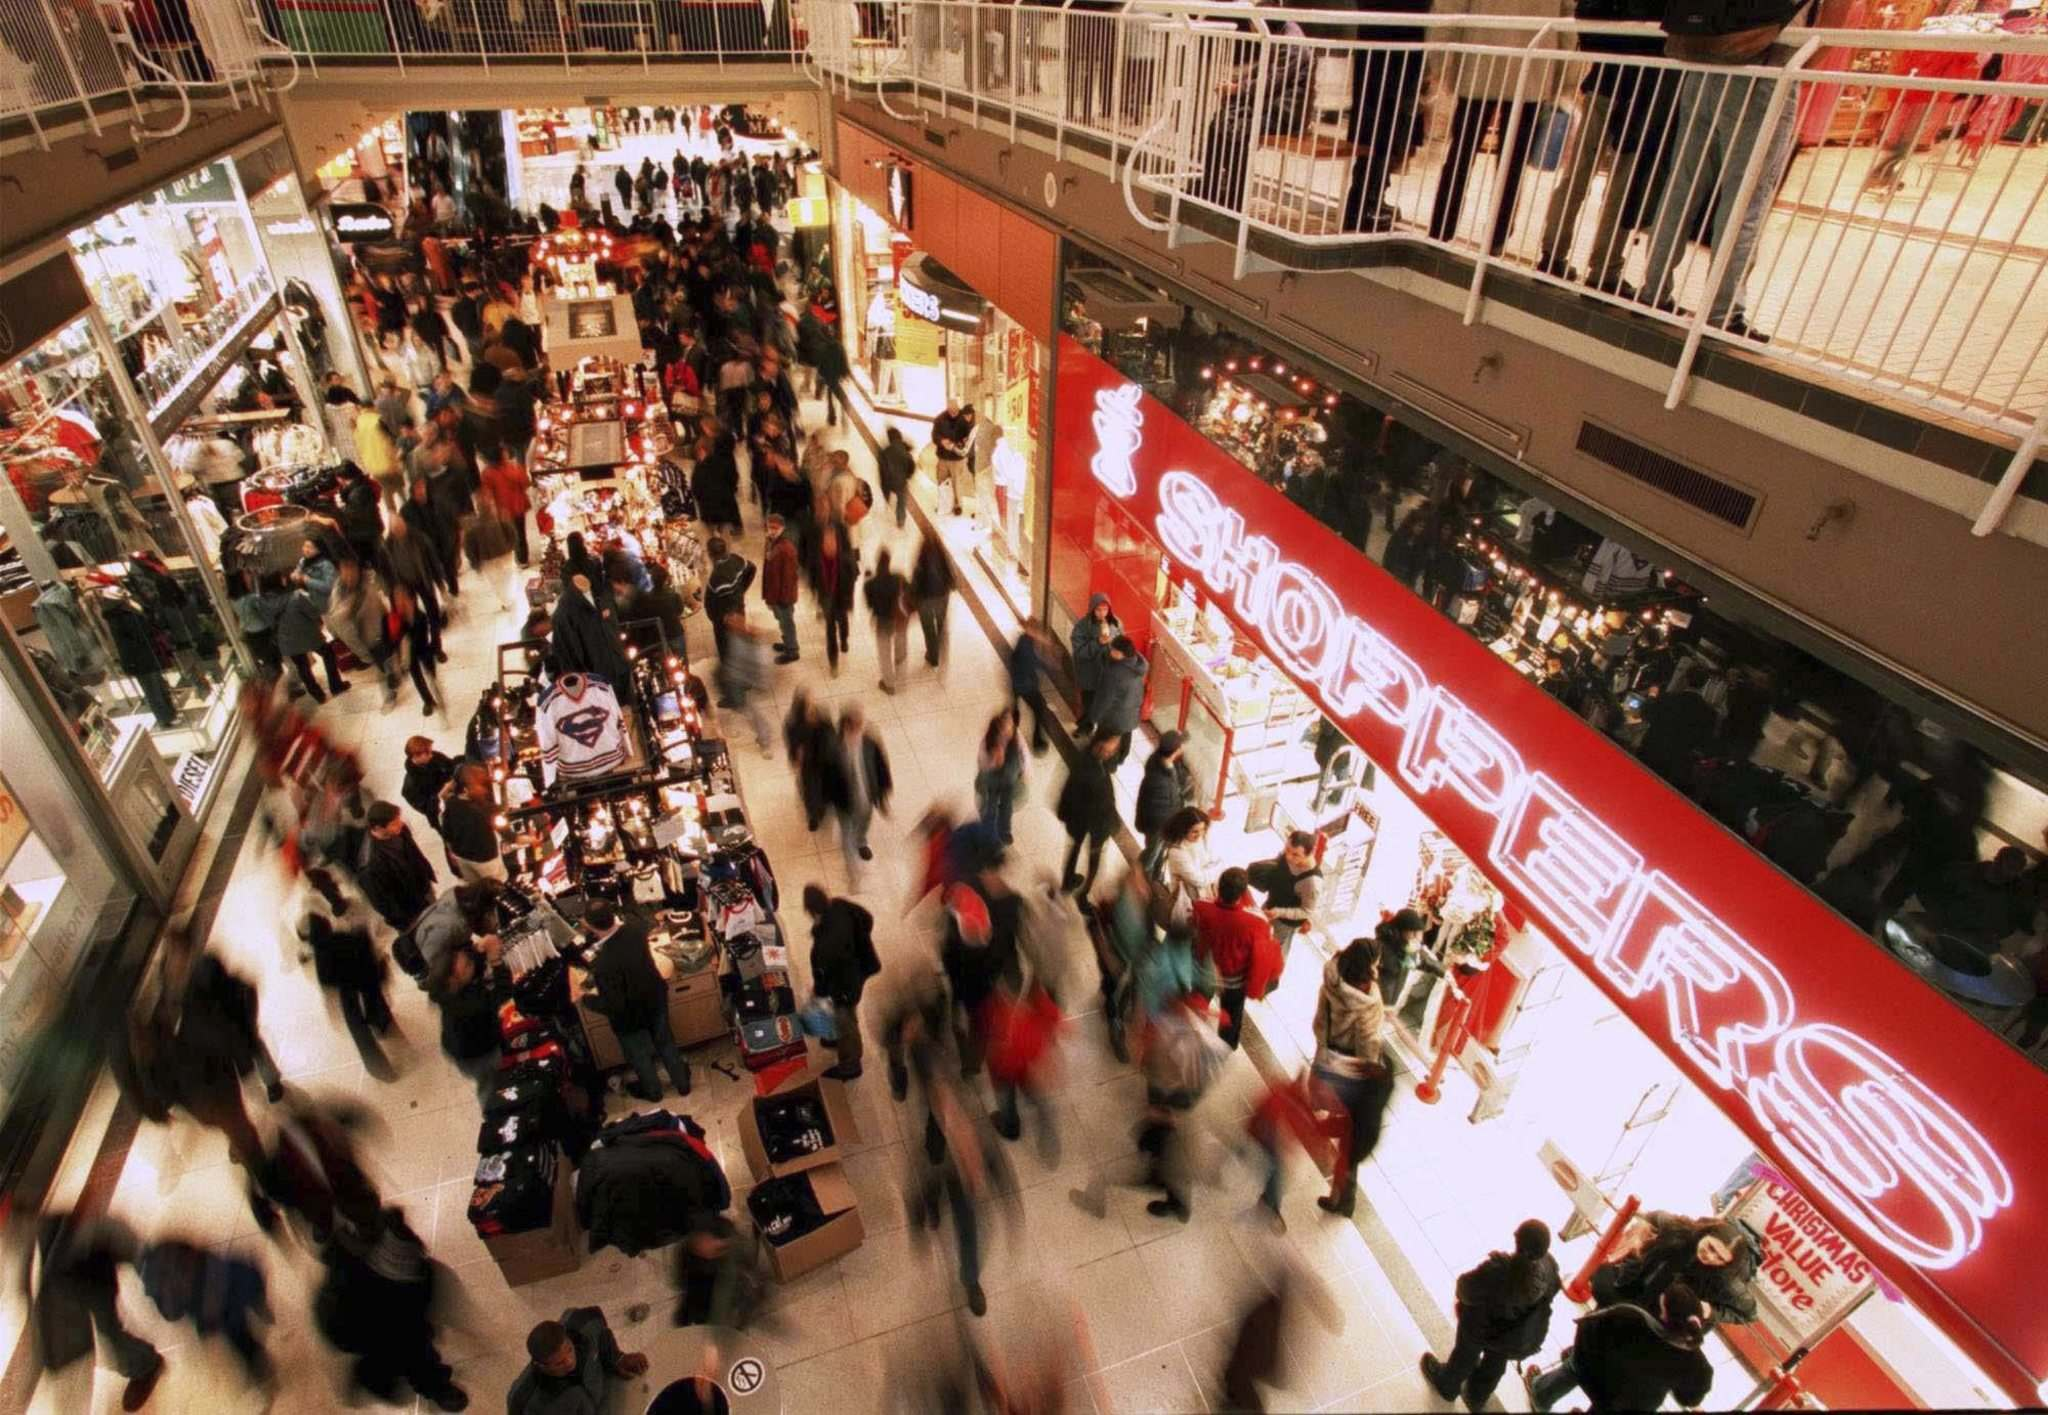 DAVID COOPER / THE CANADIAN PRESS FILES</p><p>Mall crowds may be a thing of the past. About a quarter of consumers said they shopped in malls at least once weekly pre-pandemic; that proportion is expected to be cut in half, the survey says.